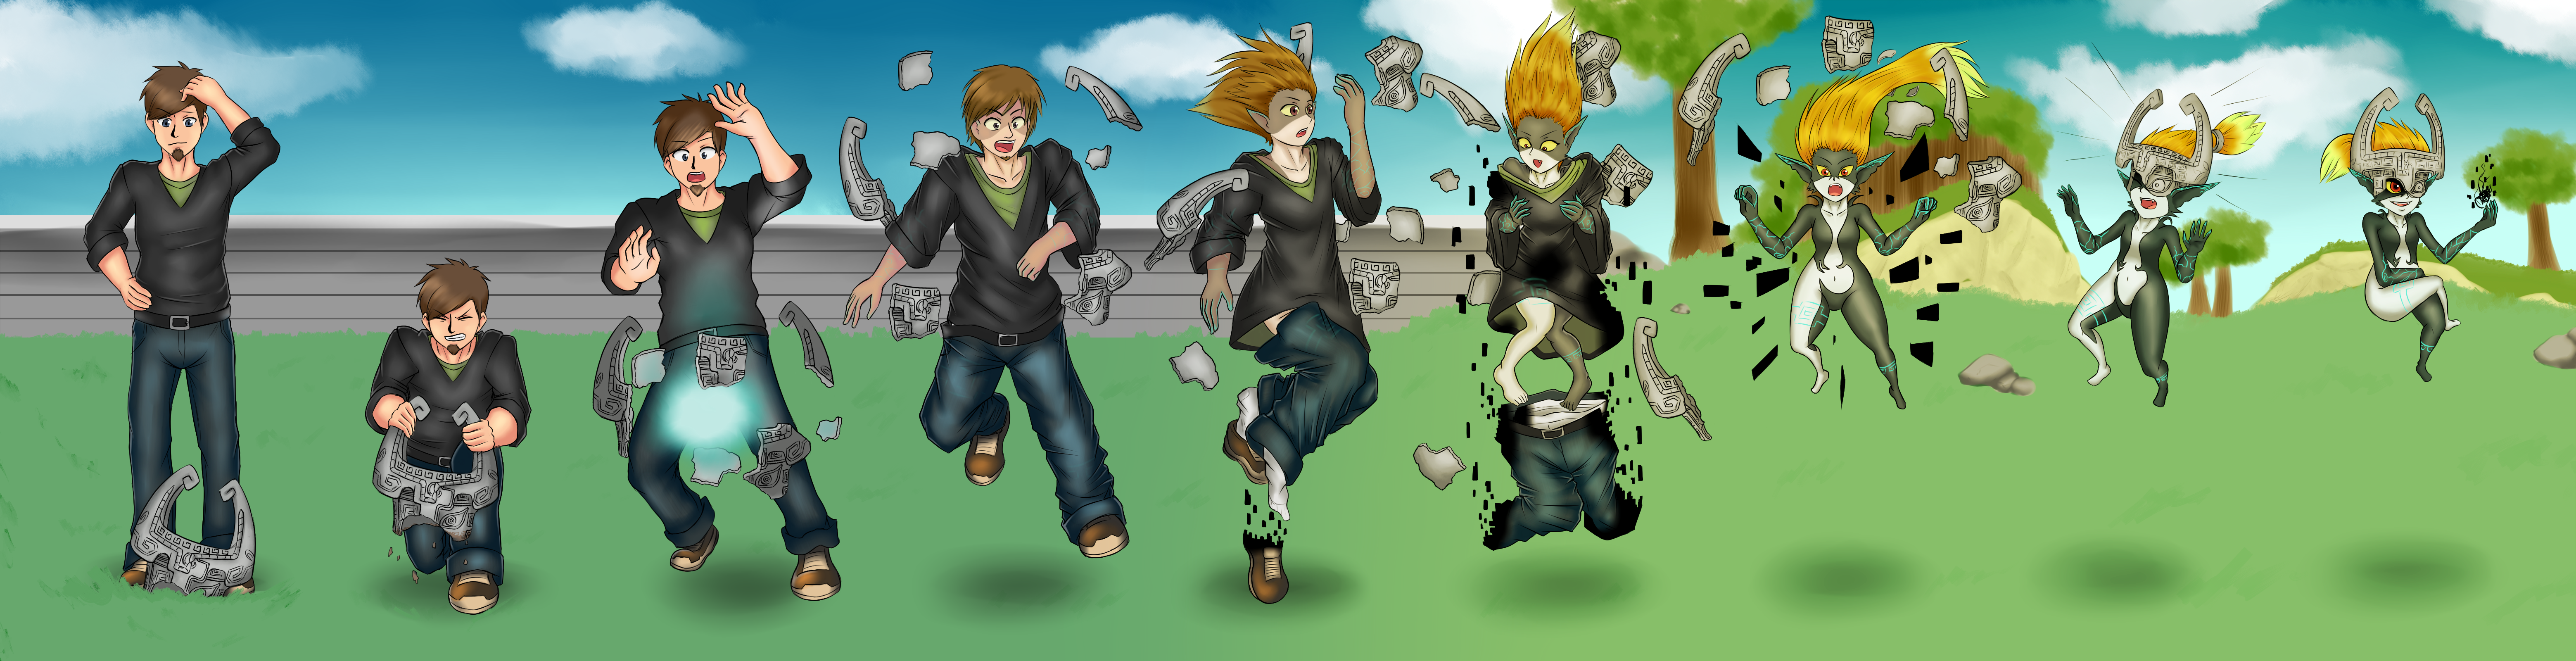 Commission - Midna TG/TF Sequence by KAIZA-TG on DeviantArt | Turn